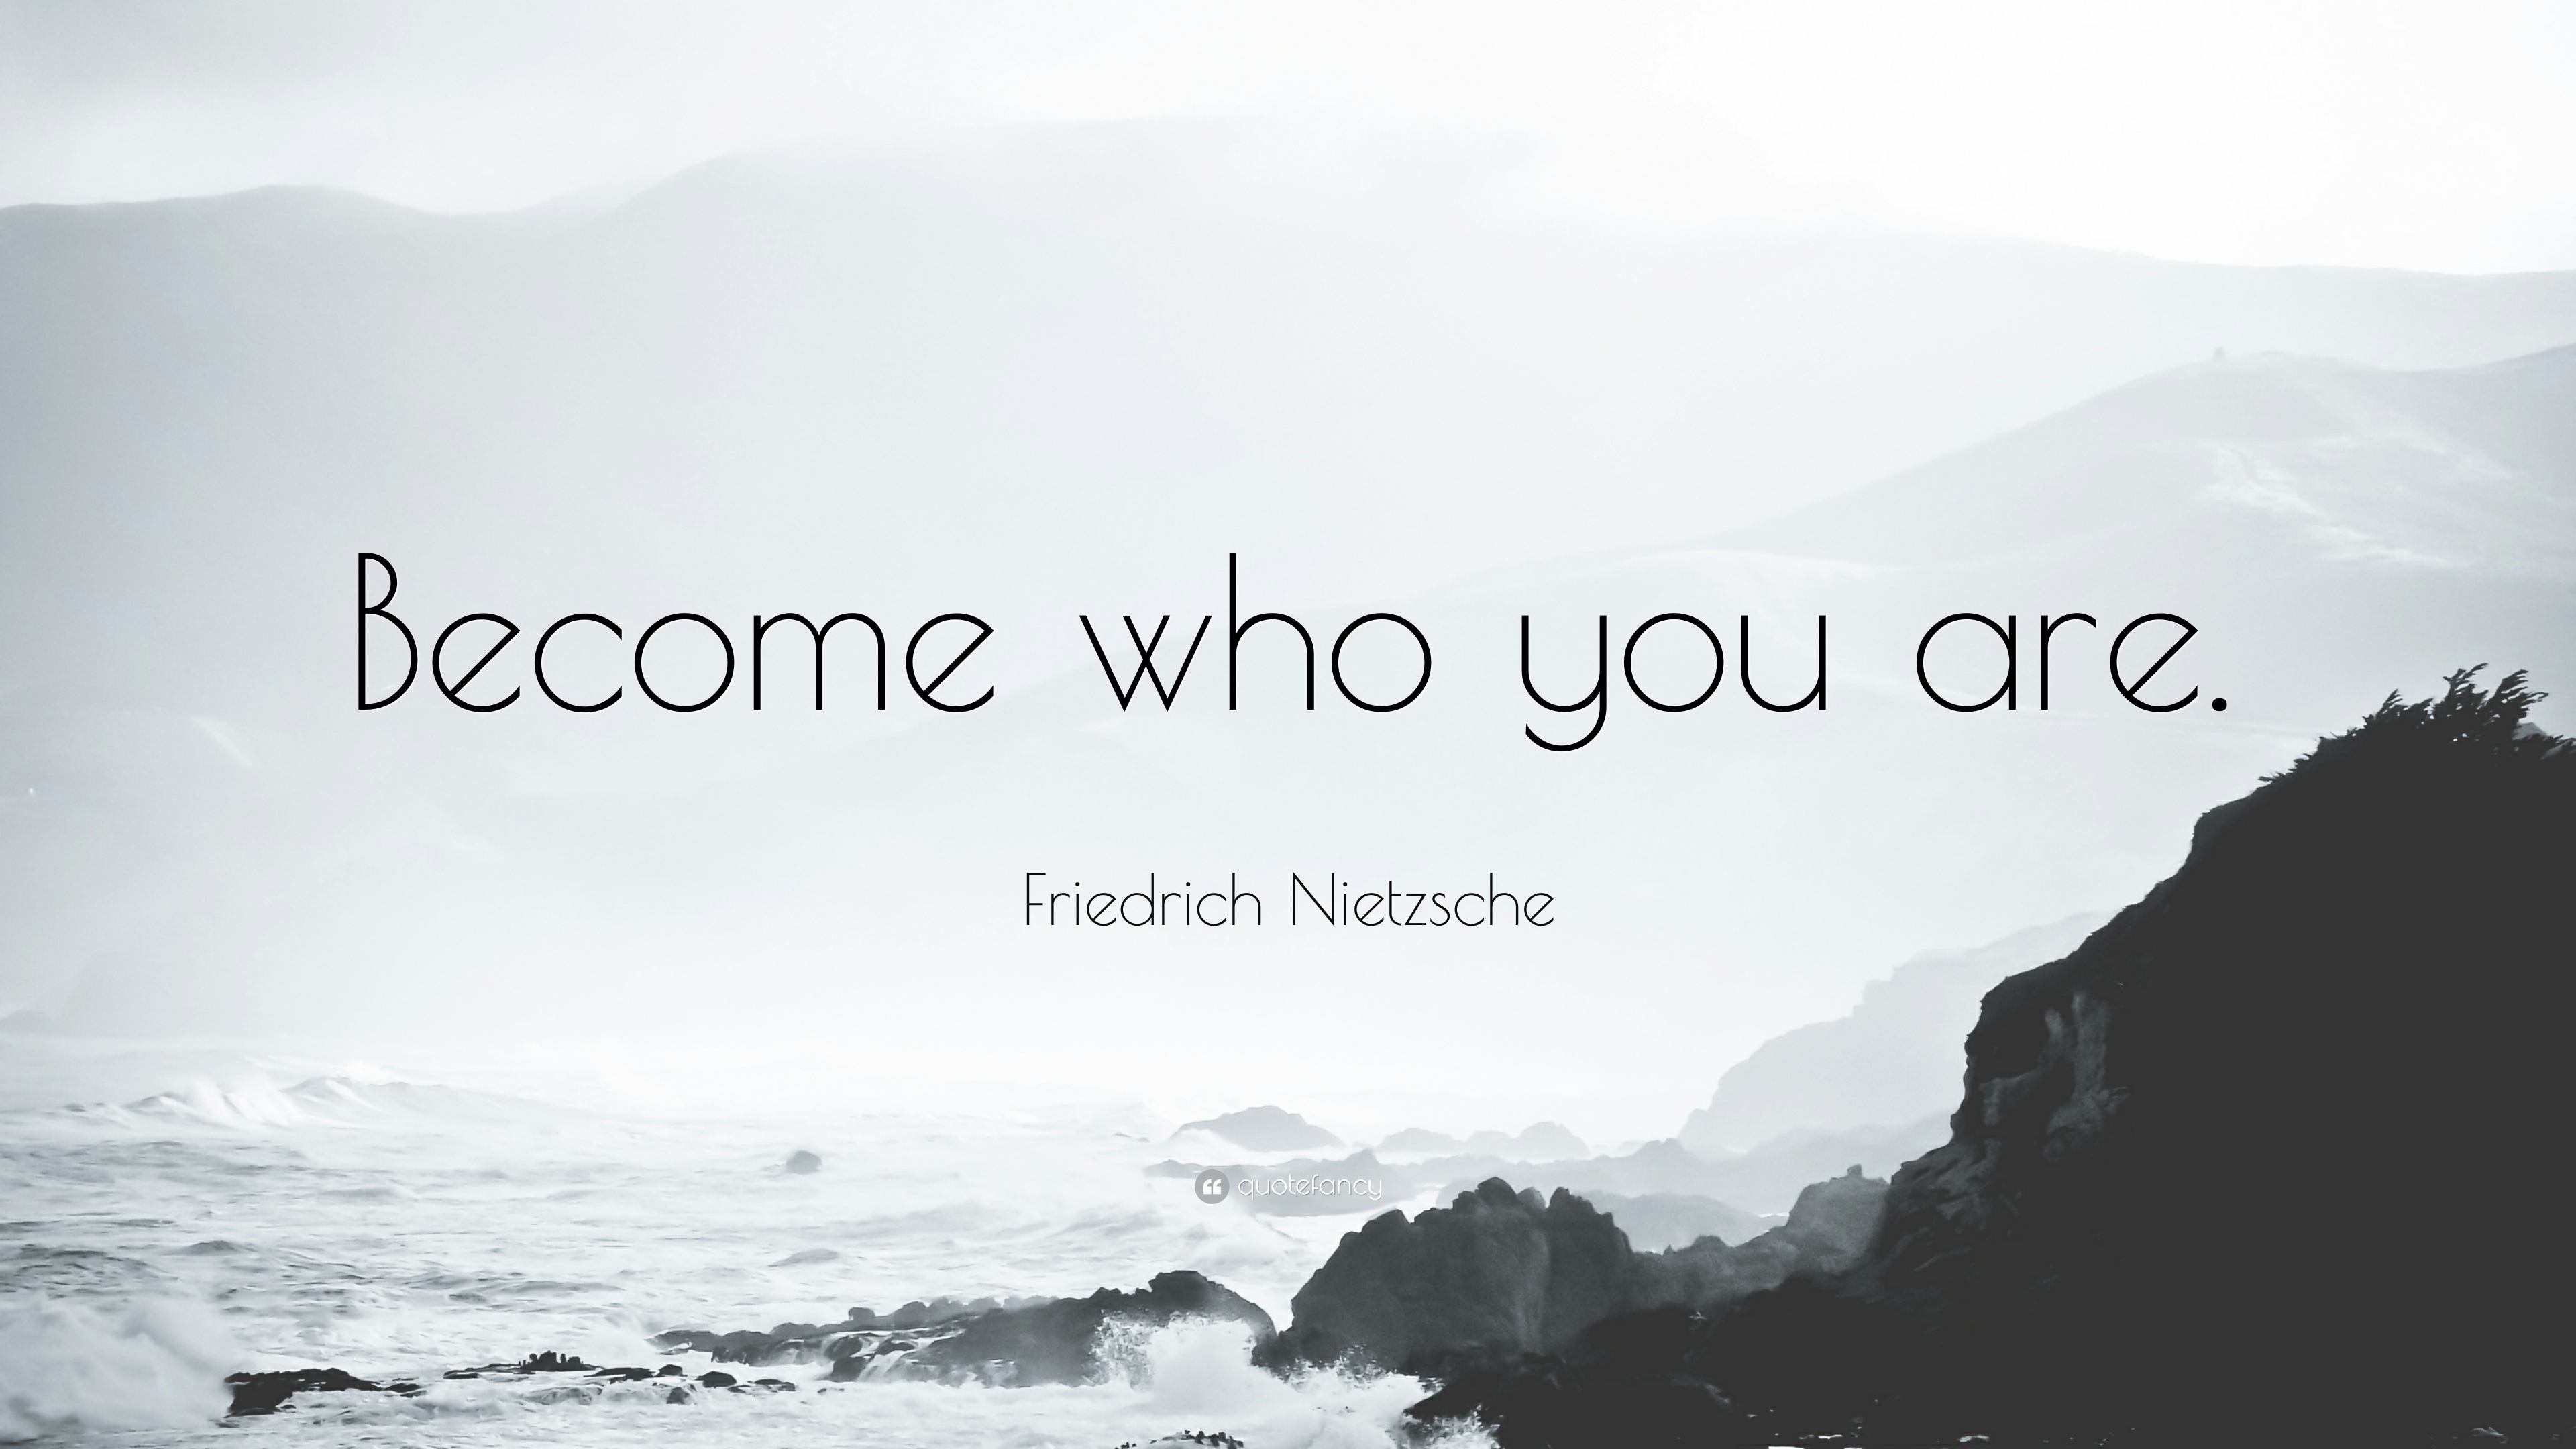 friedrich nietzsche quote become who you are 24 wallpapers